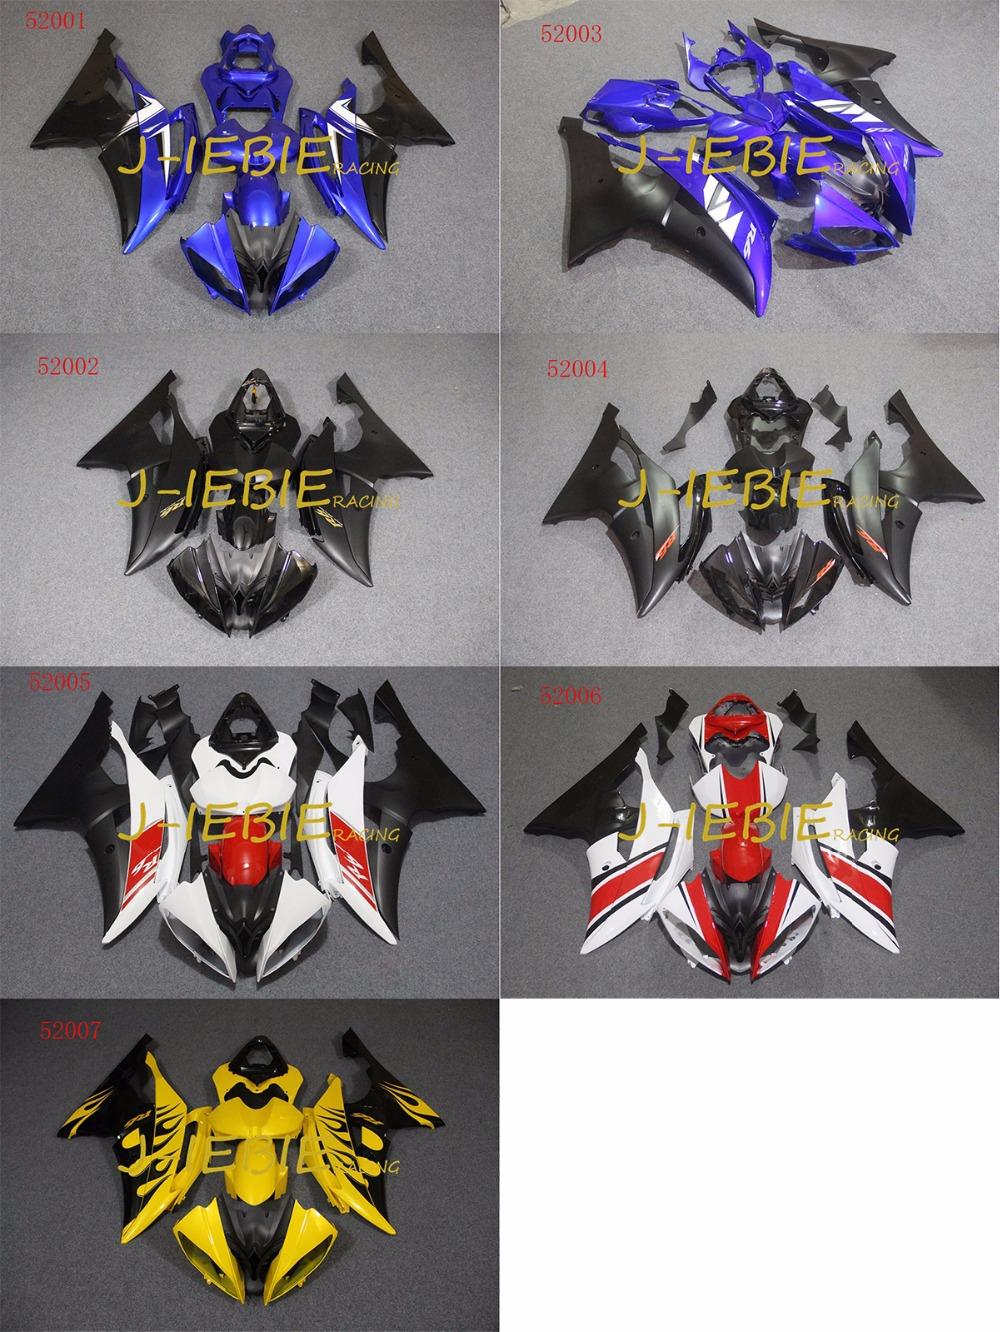 ABS Injection Fairing Body Work Frame Kit for Yamaha YZF 600 R6 2008 2009 2010 2011 2012 2013 2014 2015